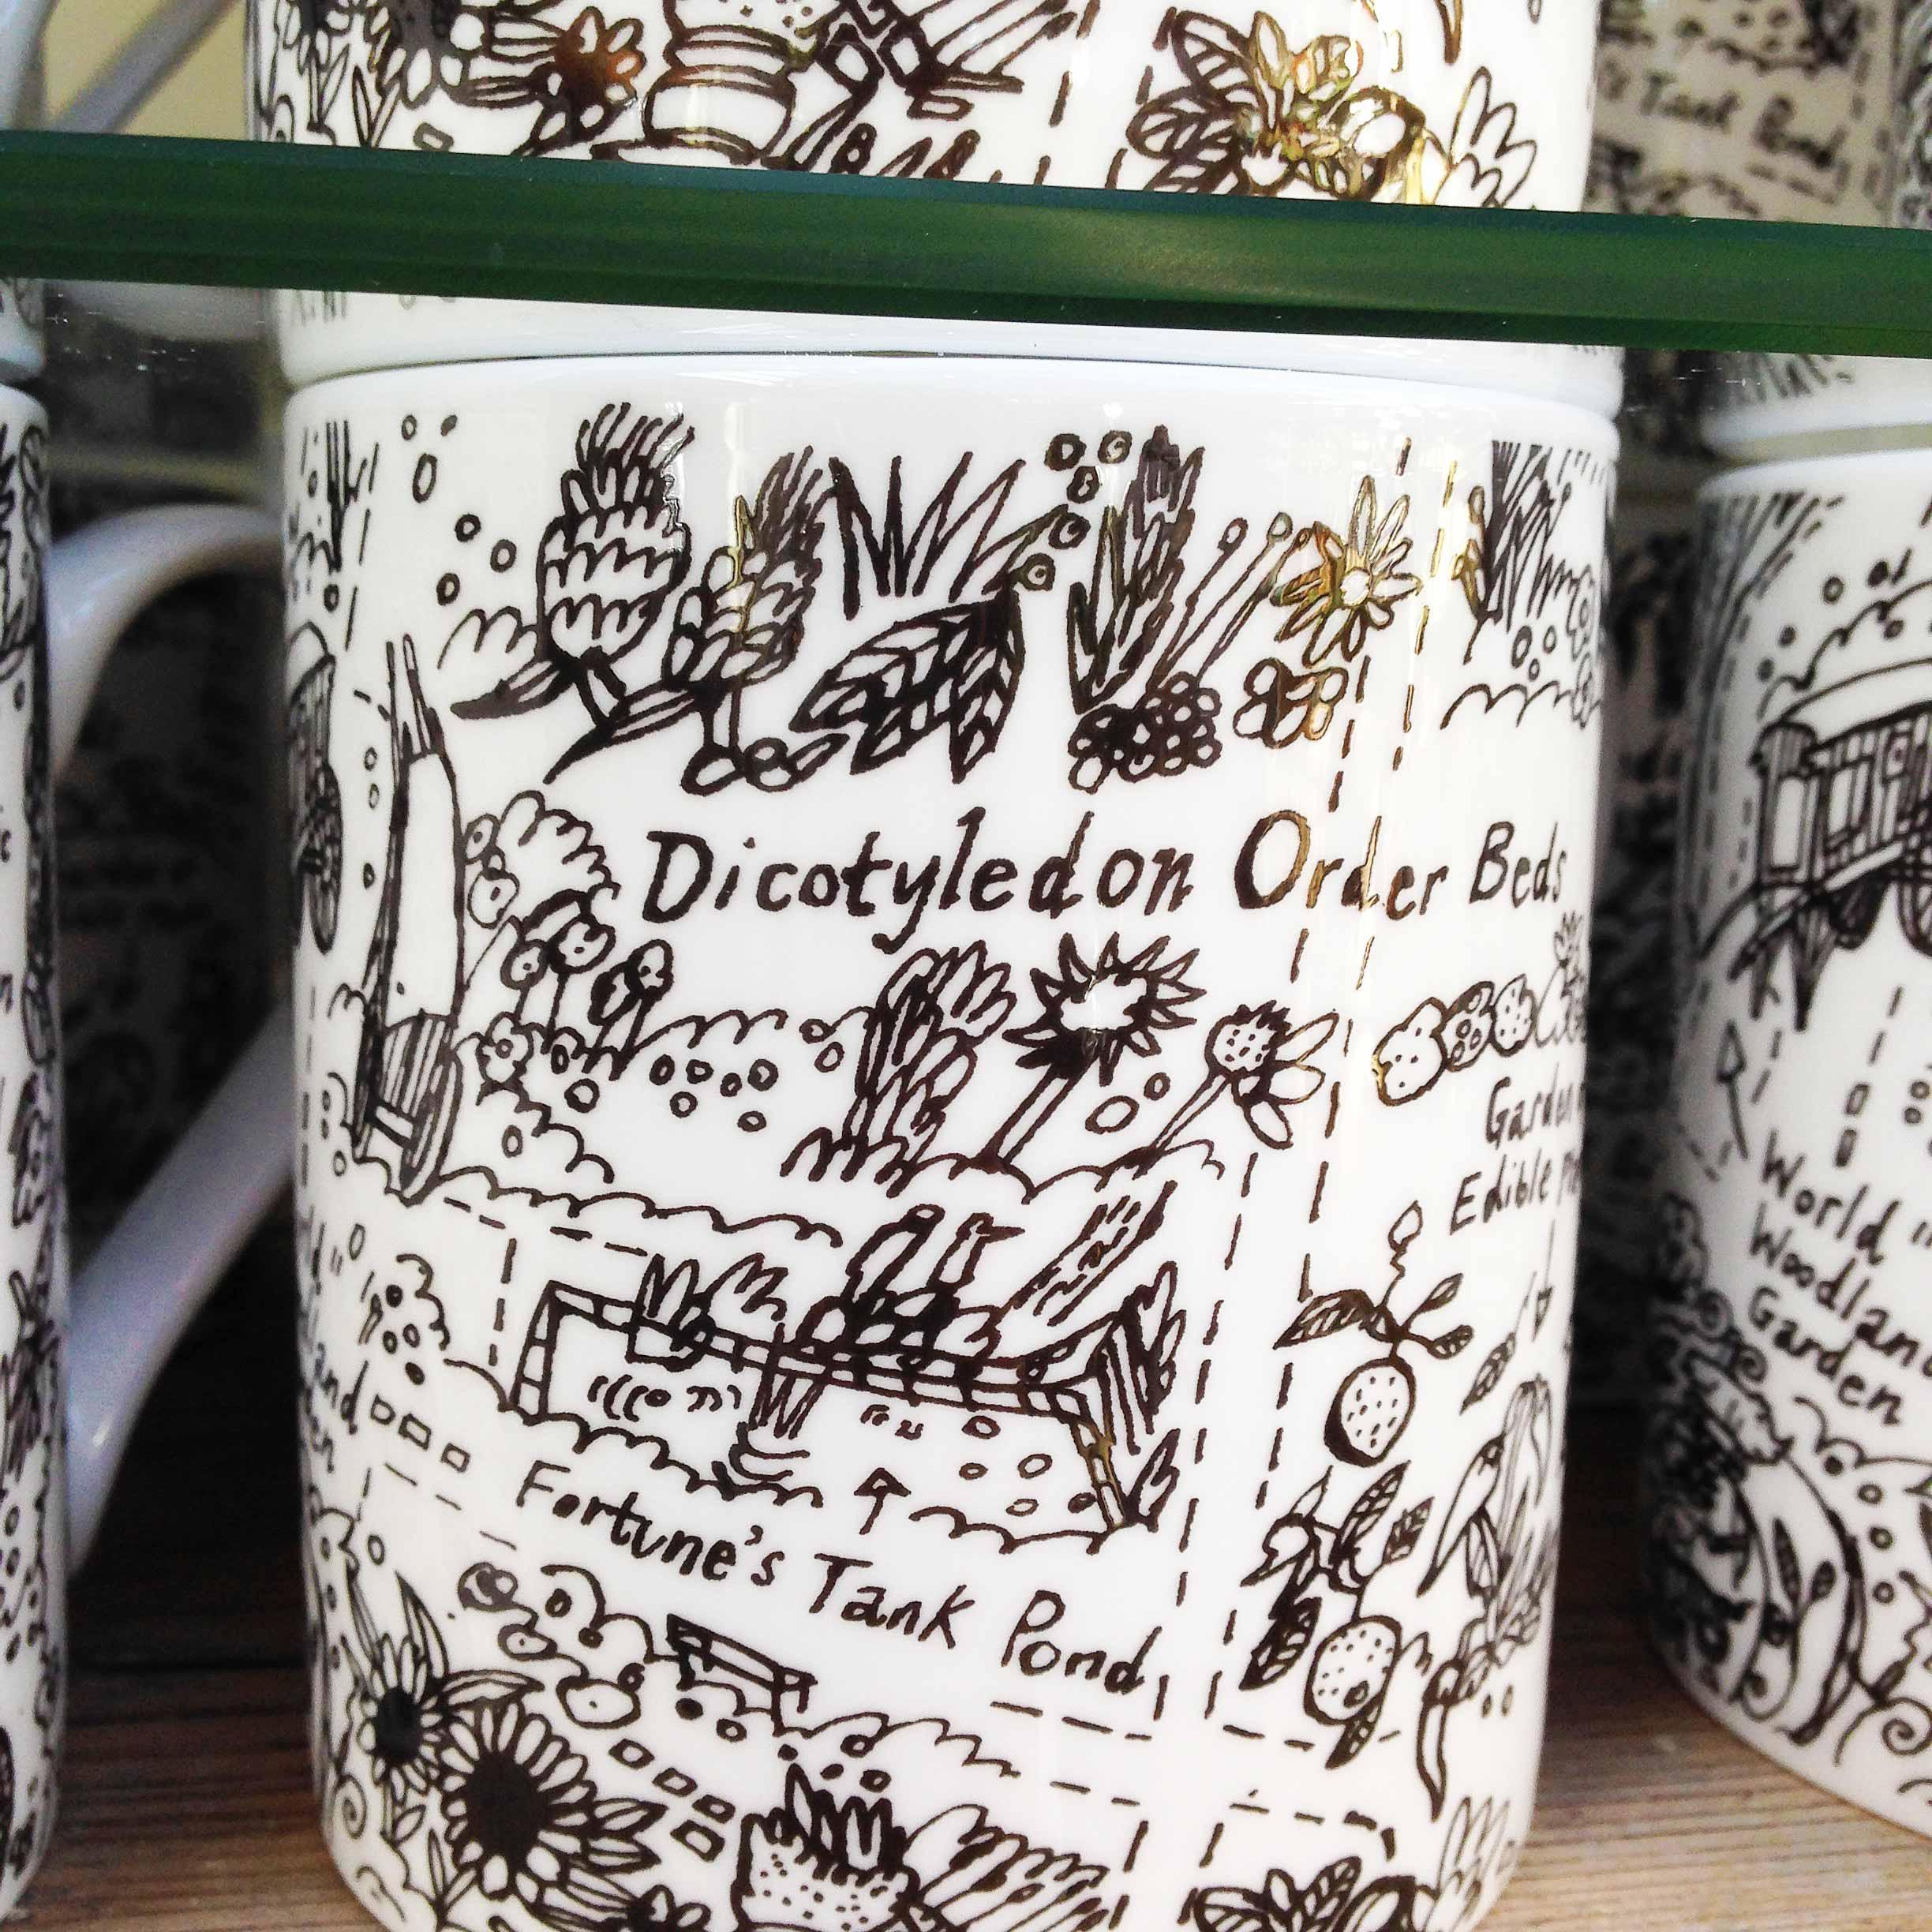 Chelsea Physic Garden mugs by James Oses, image 2